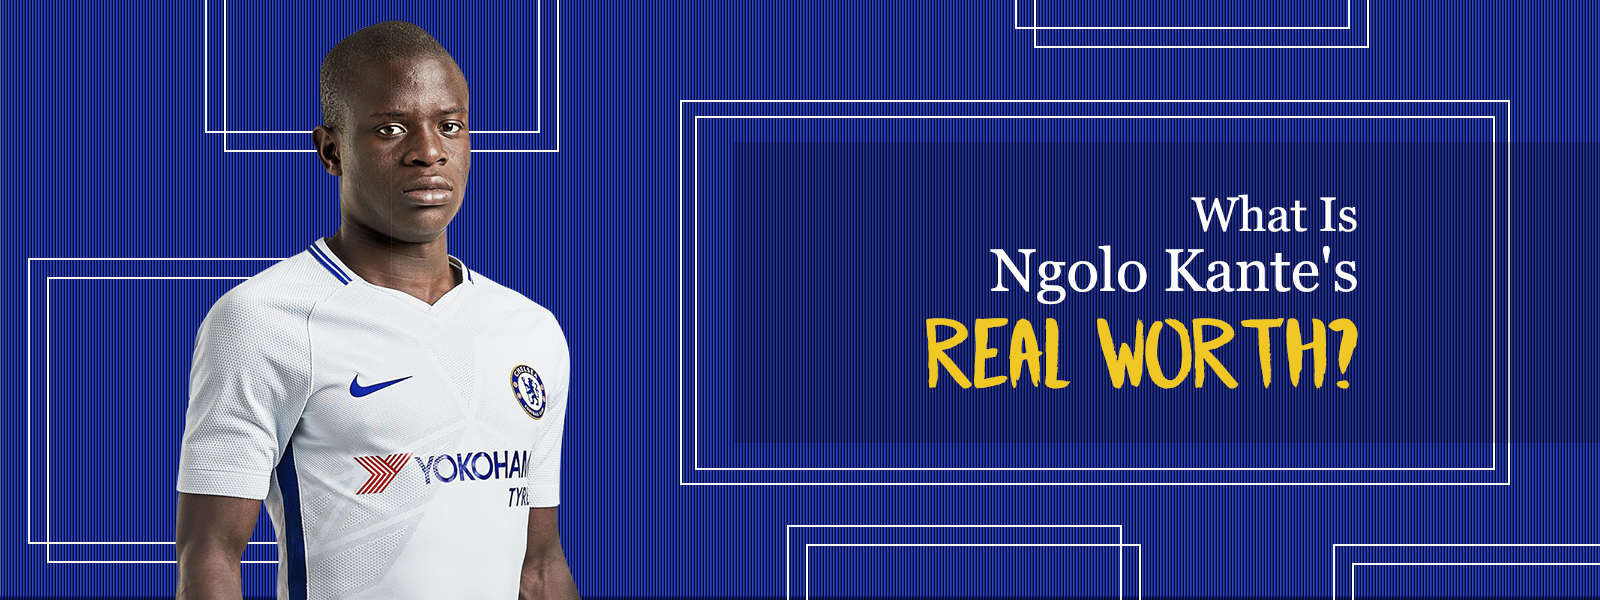 What Is Ngolo Kante Real Worth?